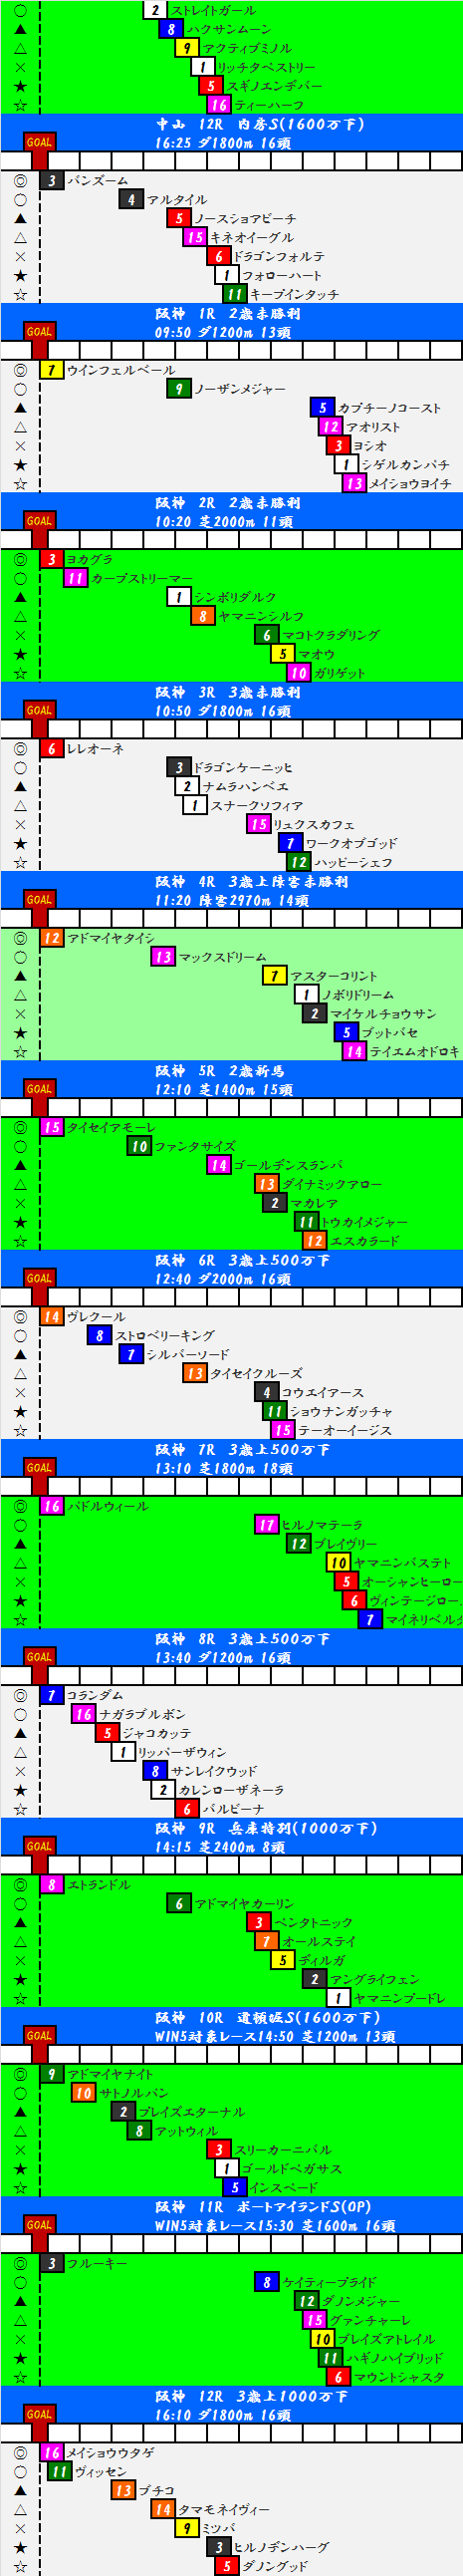 2015100402.png